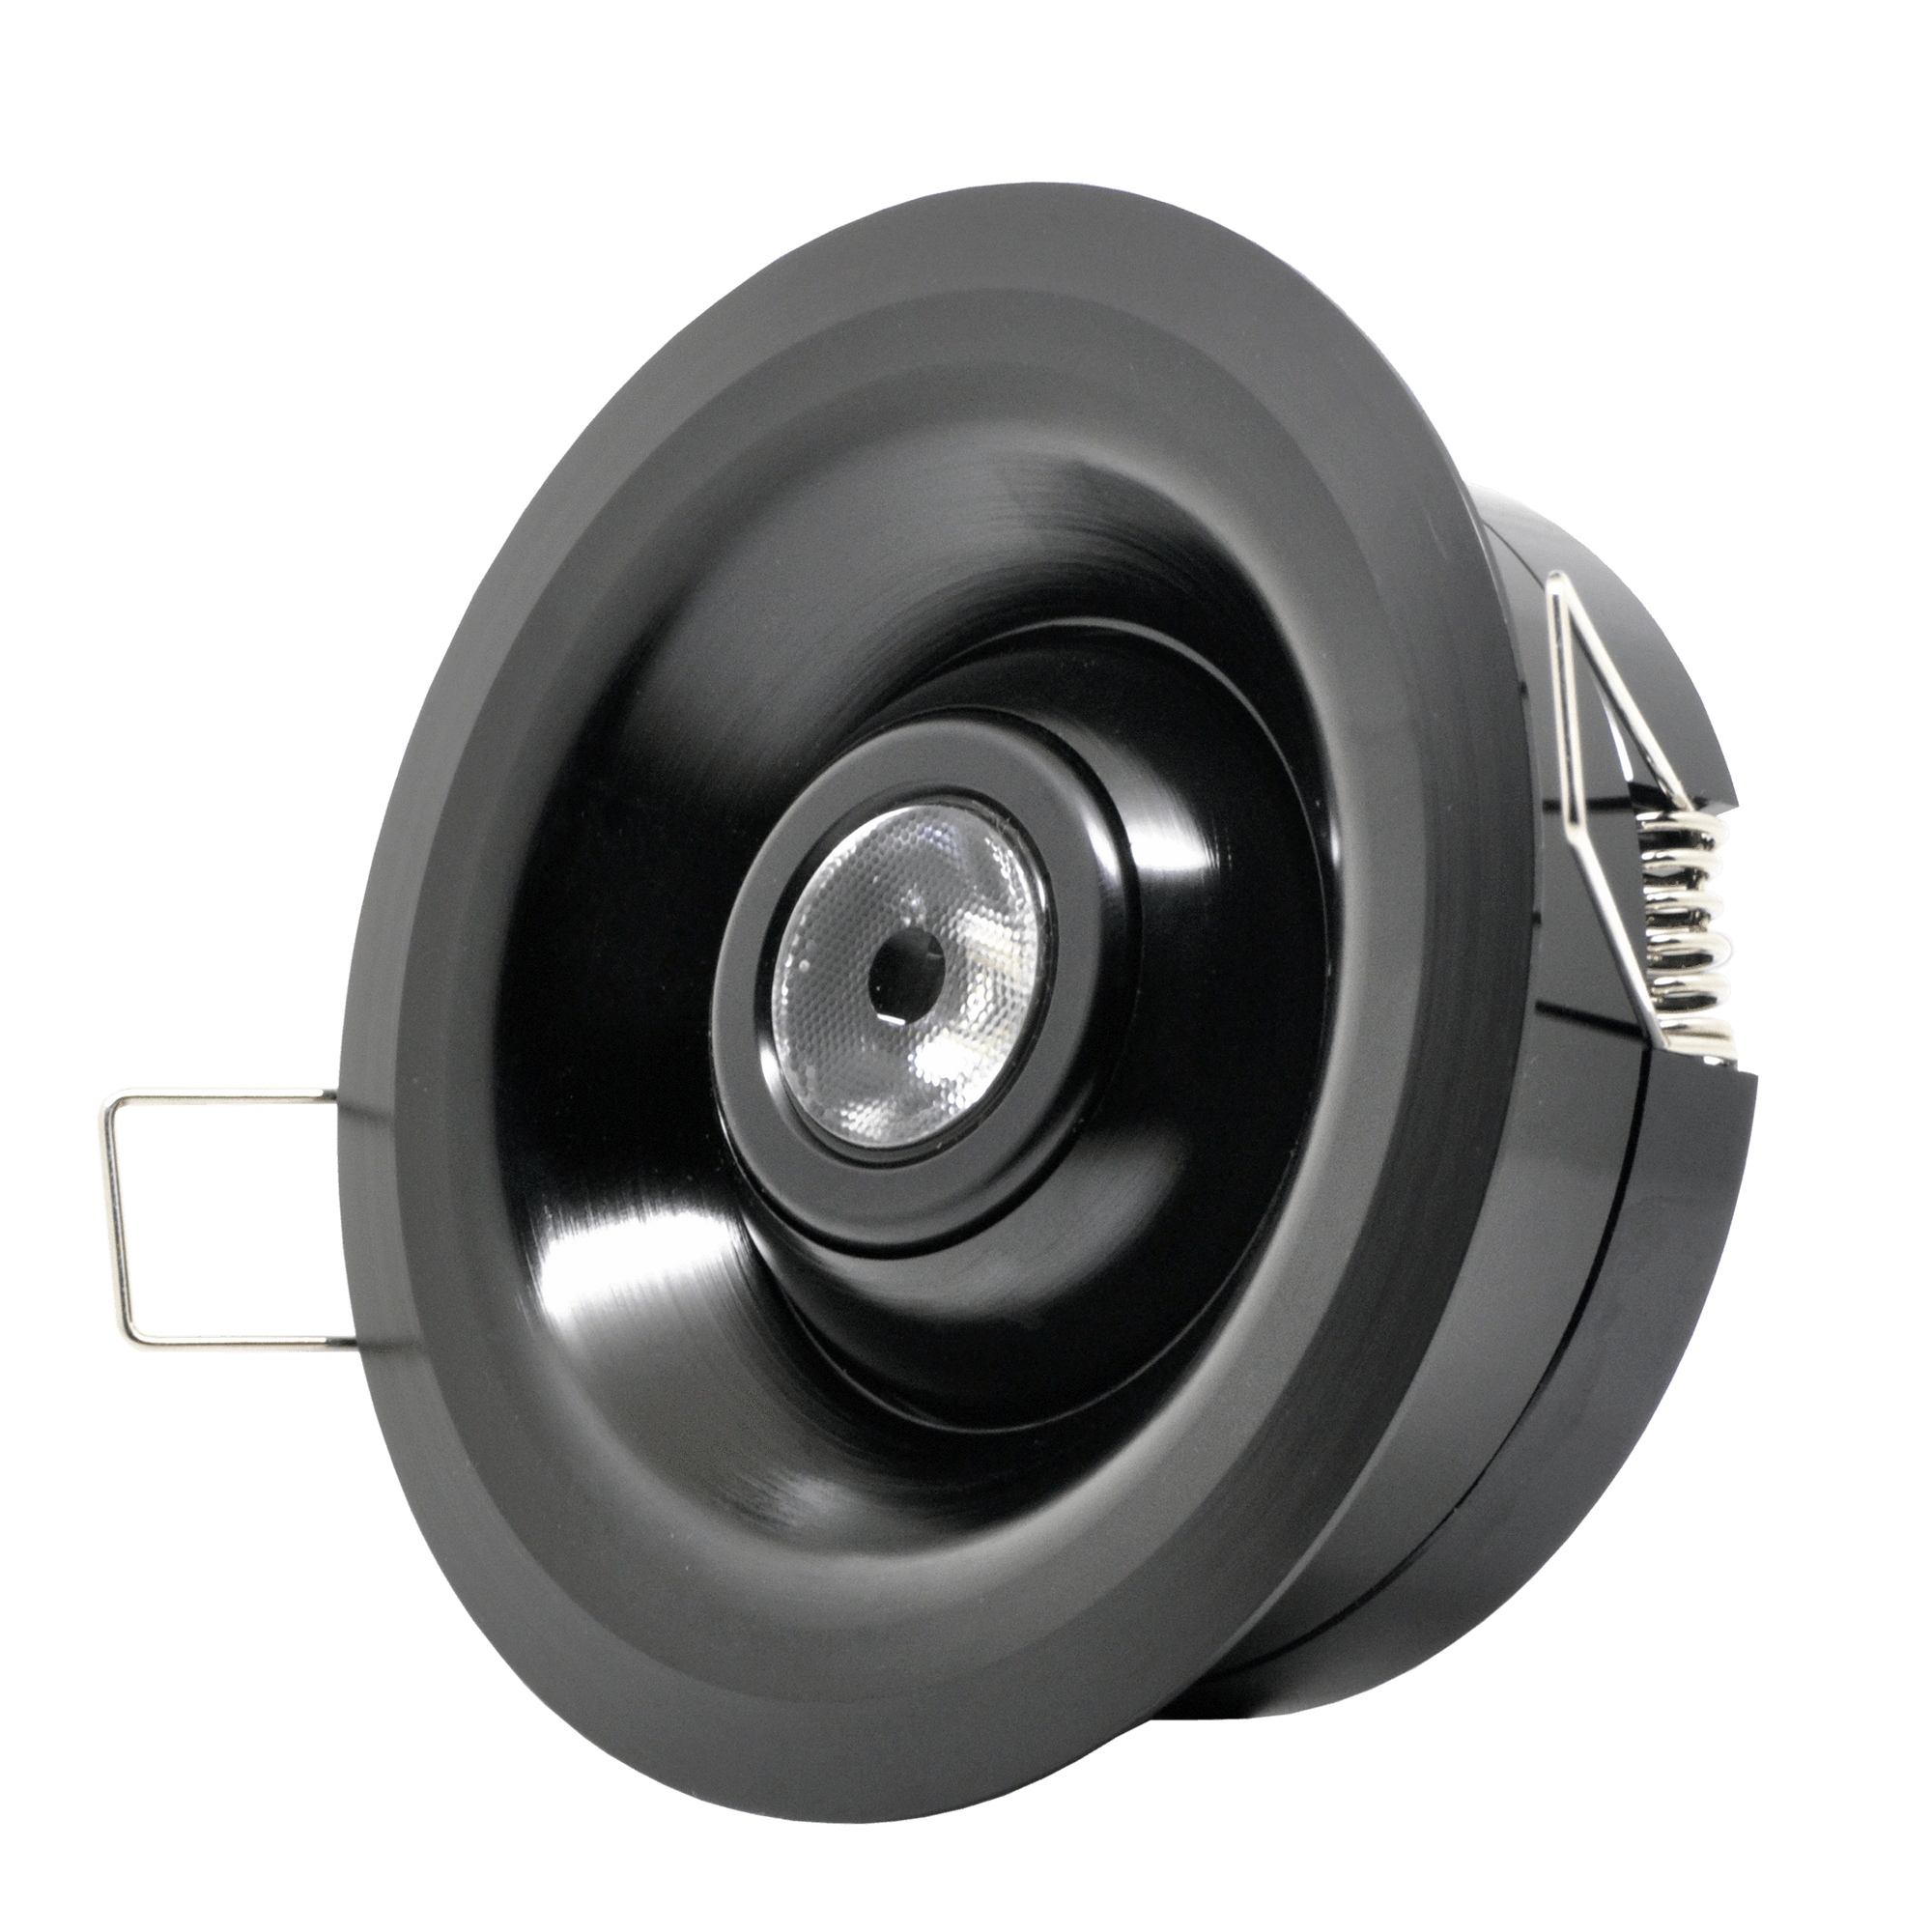 Gantom Recessed Fixture Trim Spring Mounted